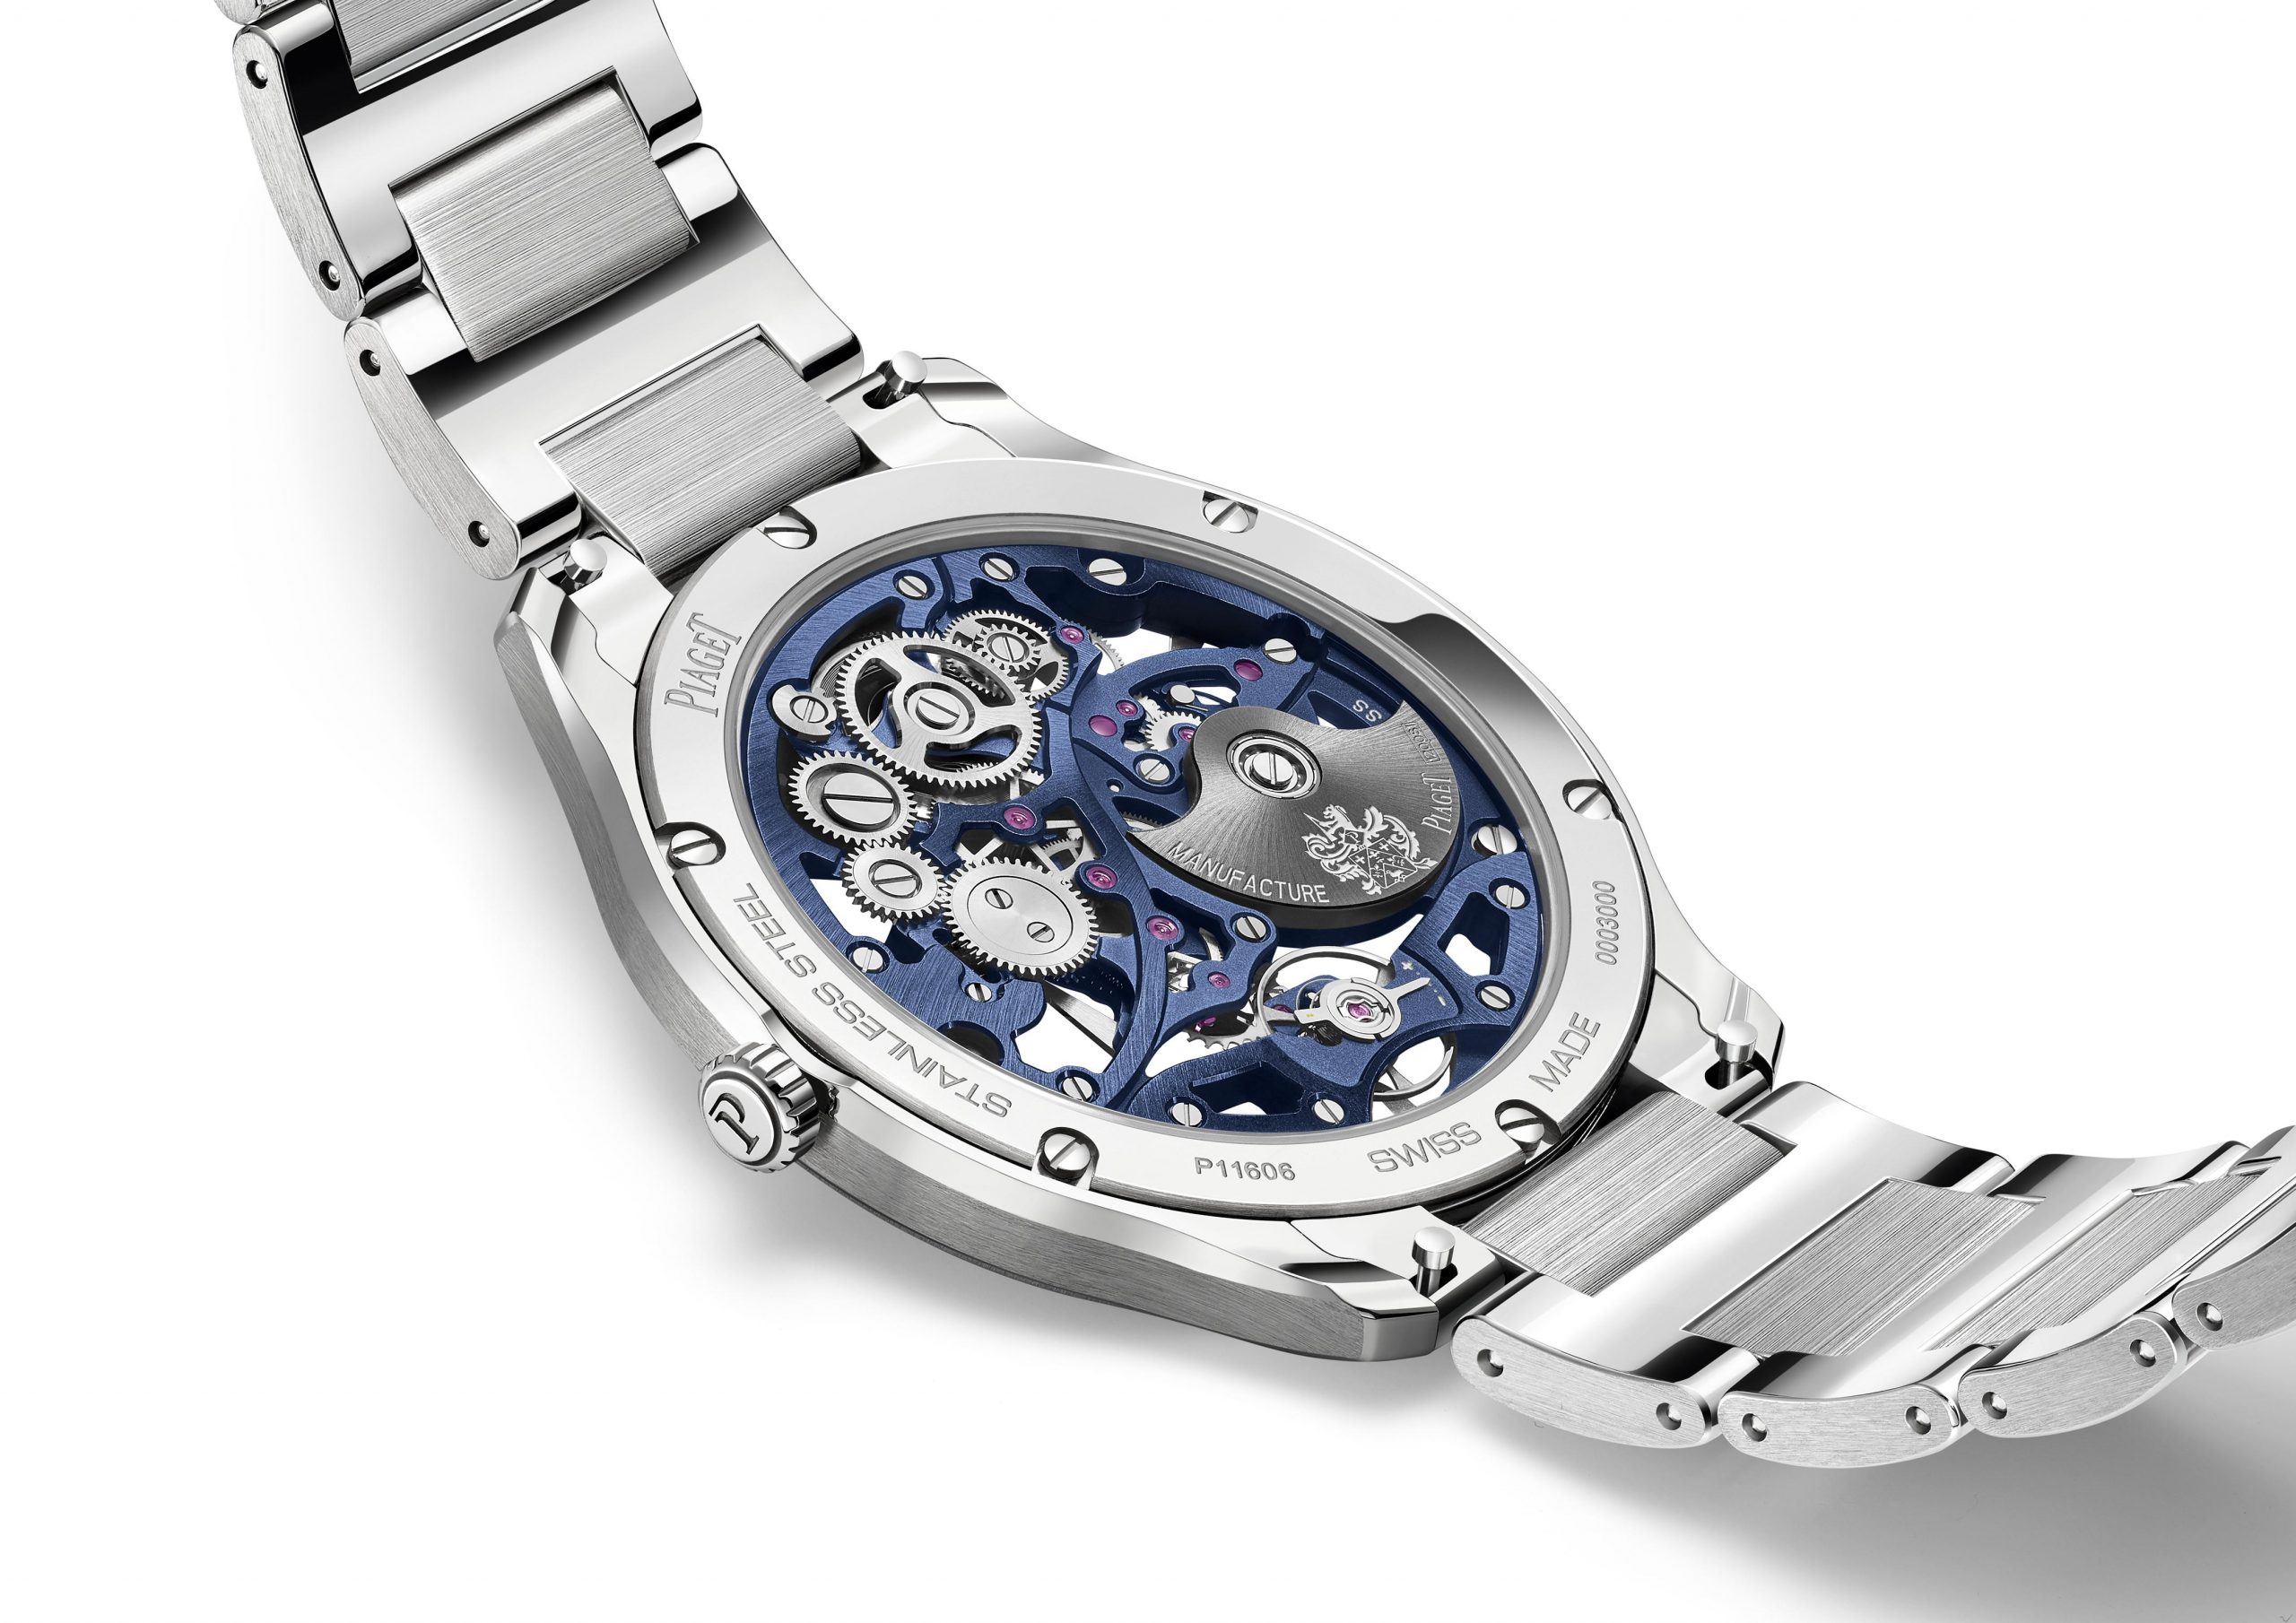 INTRODUCING: The Piaget Polo Skeleton watch is now 30% thinner at 6.5mm thick